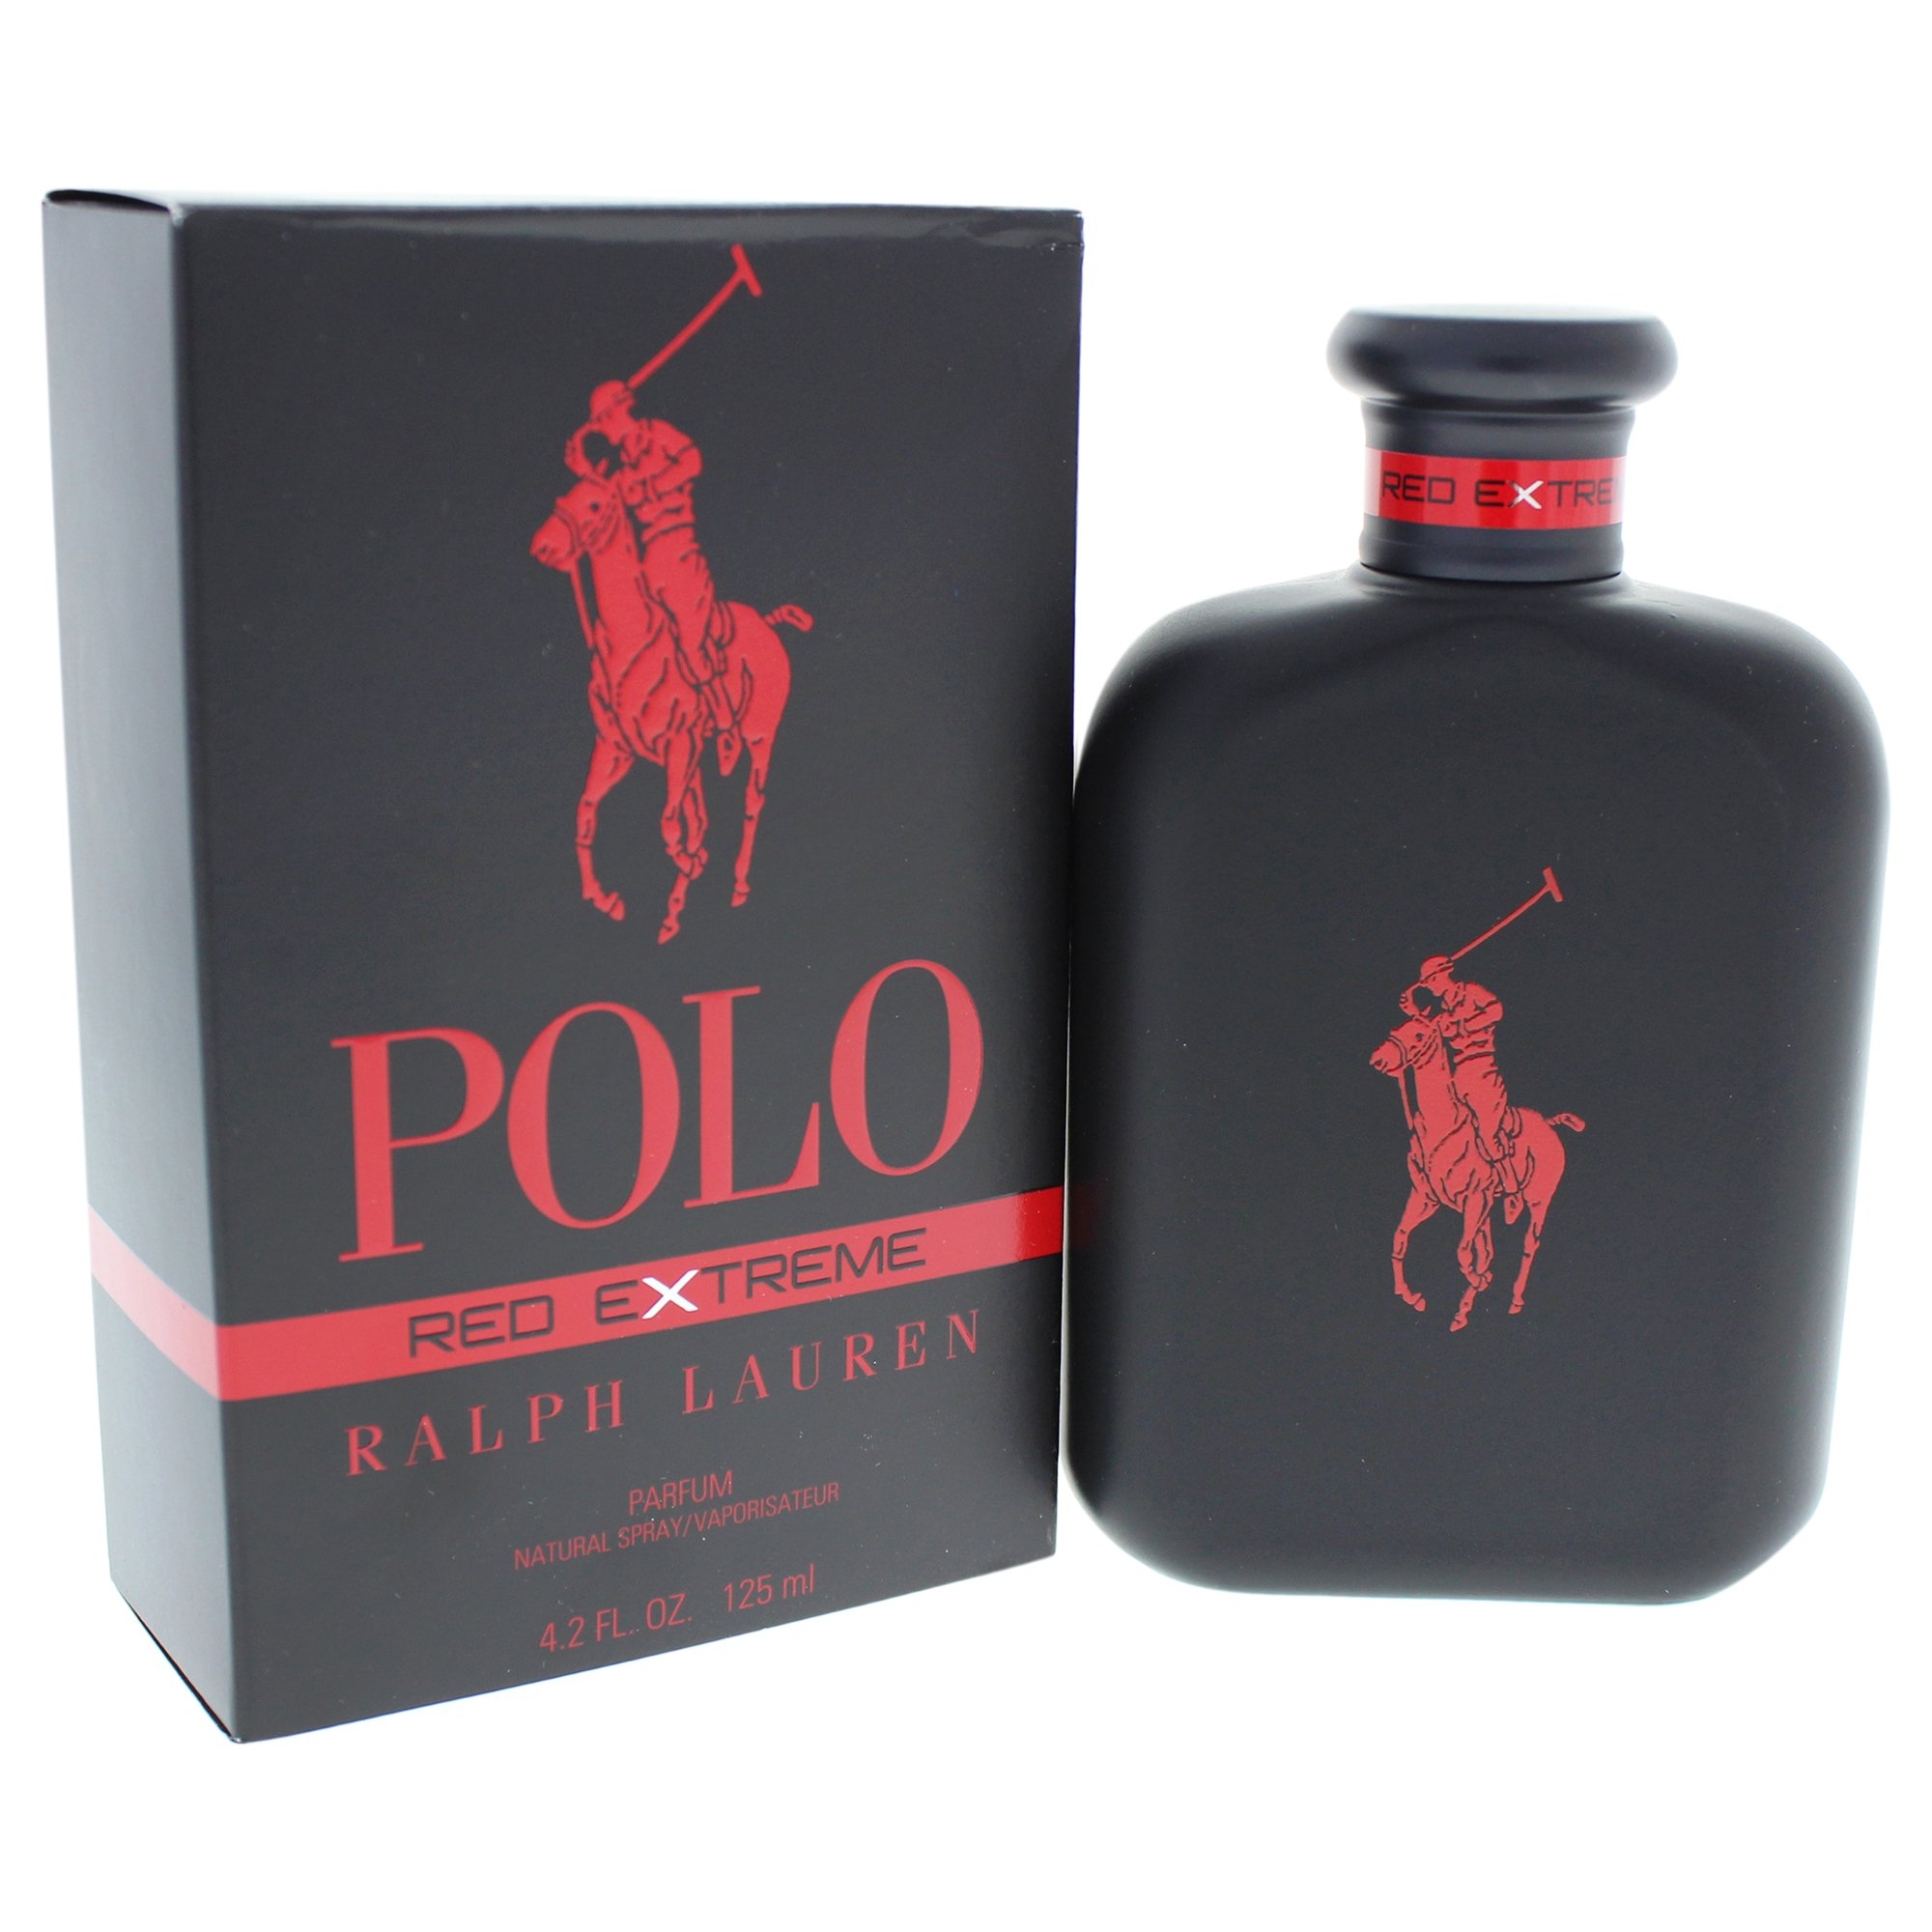 073a13f13ead Amazon.com   Ralph Lauren Polo Red Intense for Men 4.2 Oz Edp Spray ...